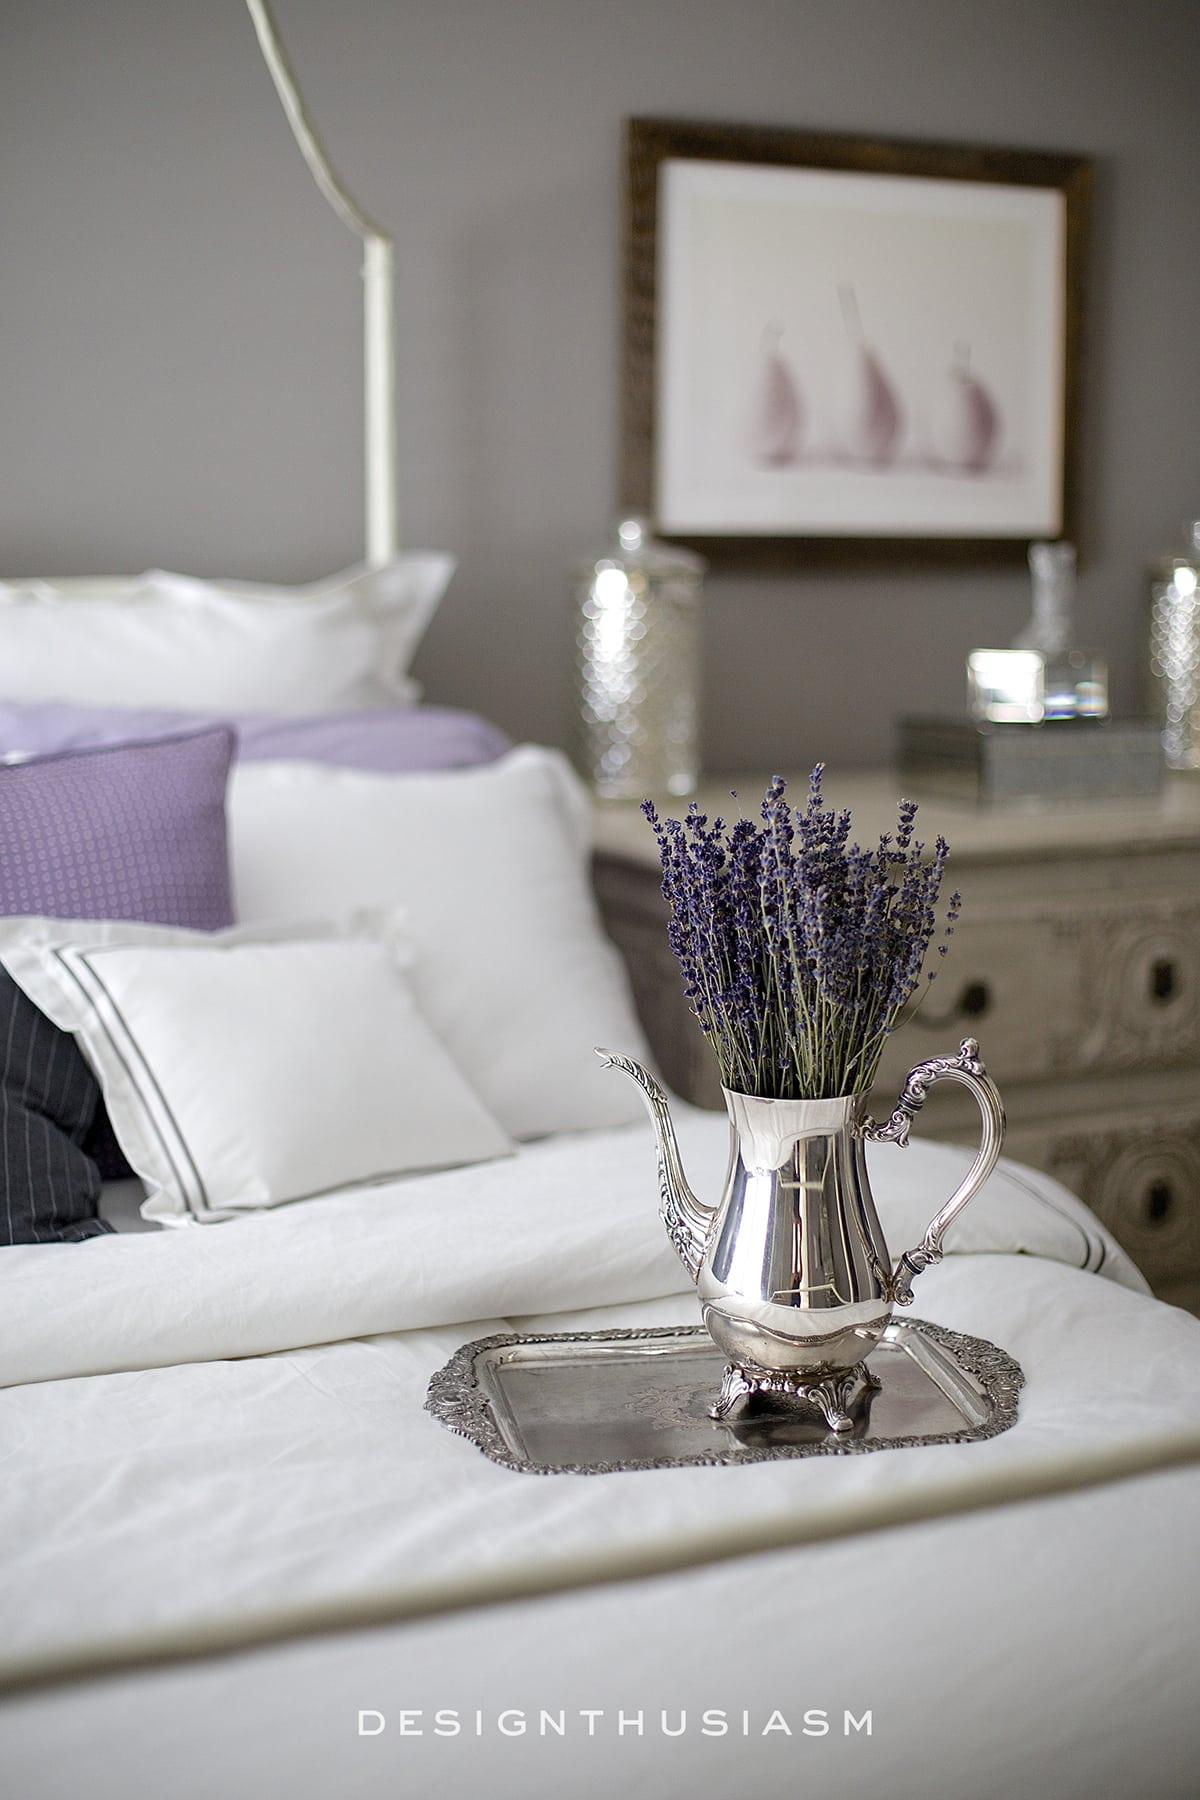 Classic Hotel Bedding in the Grey Bedroom | Designthuisasm.com